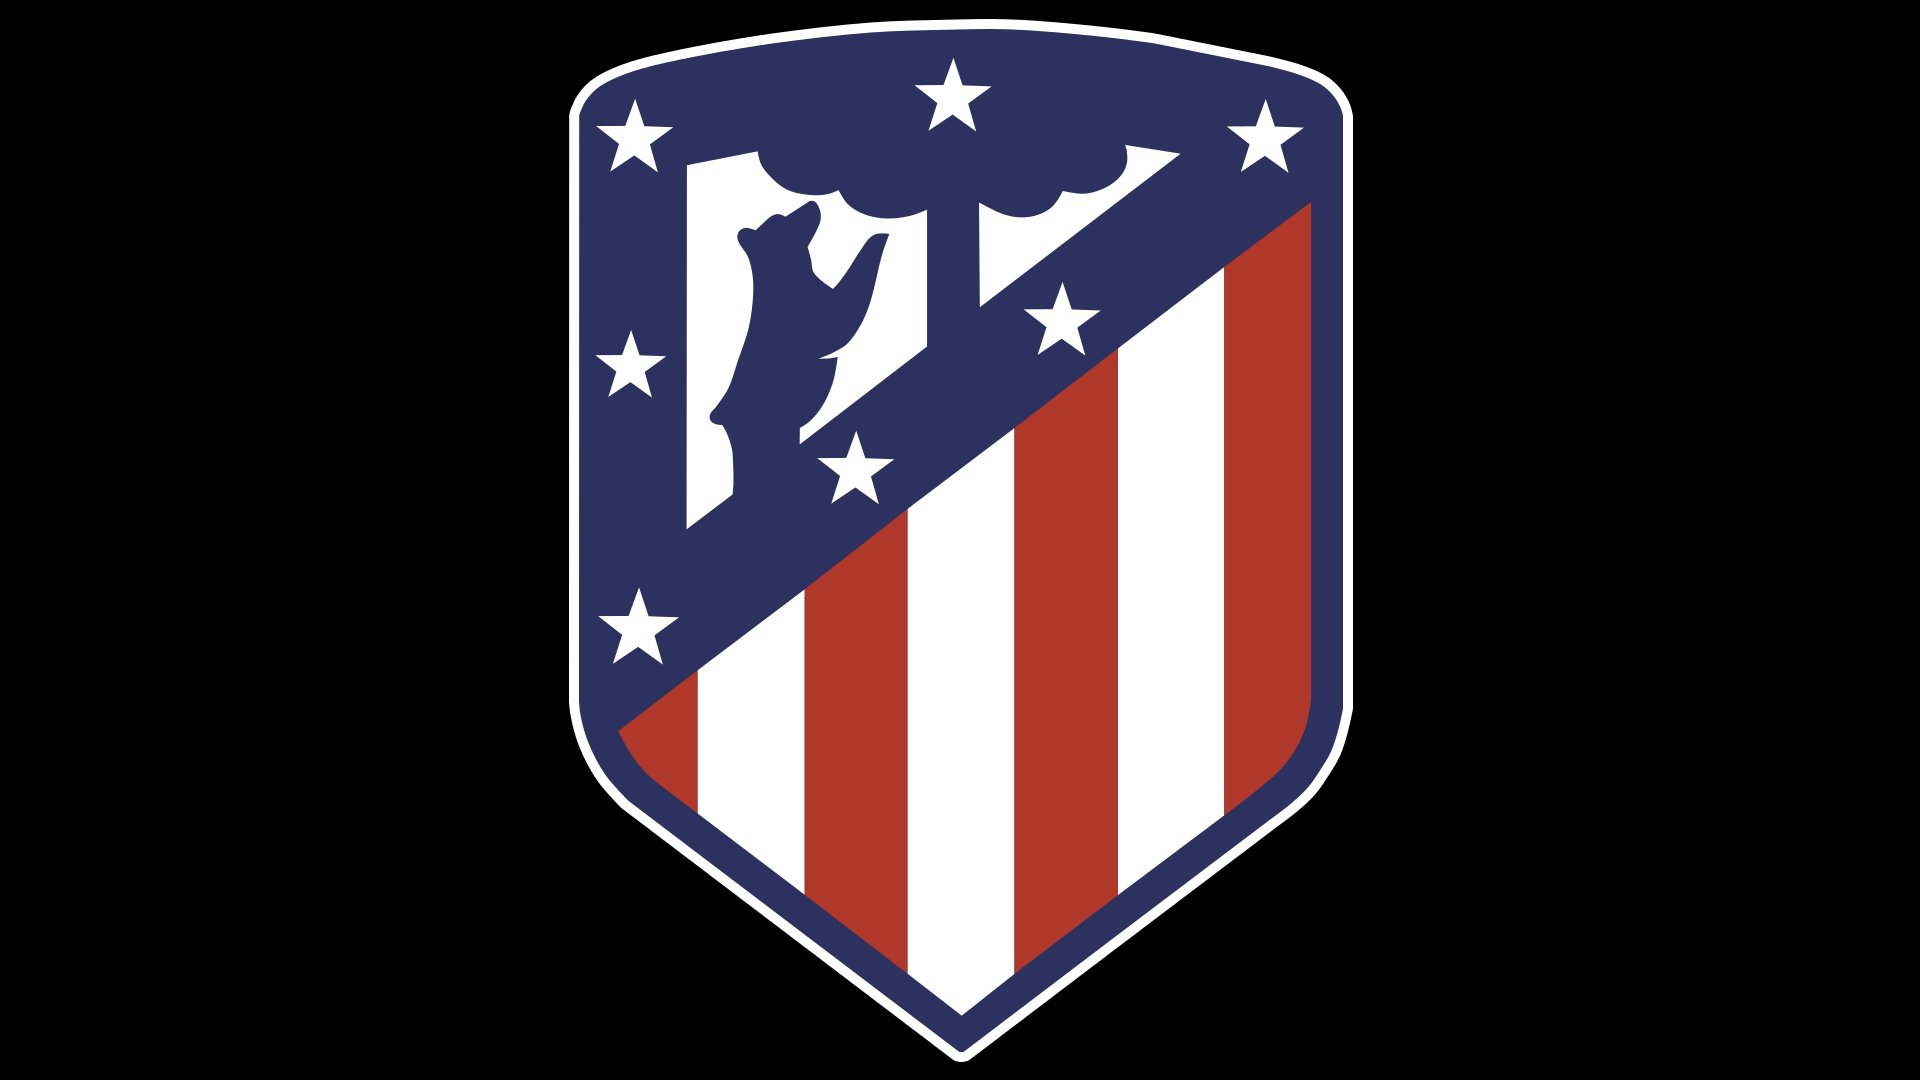 atletico madrid logo  atletico madrid symbol  meaning  history and evolution